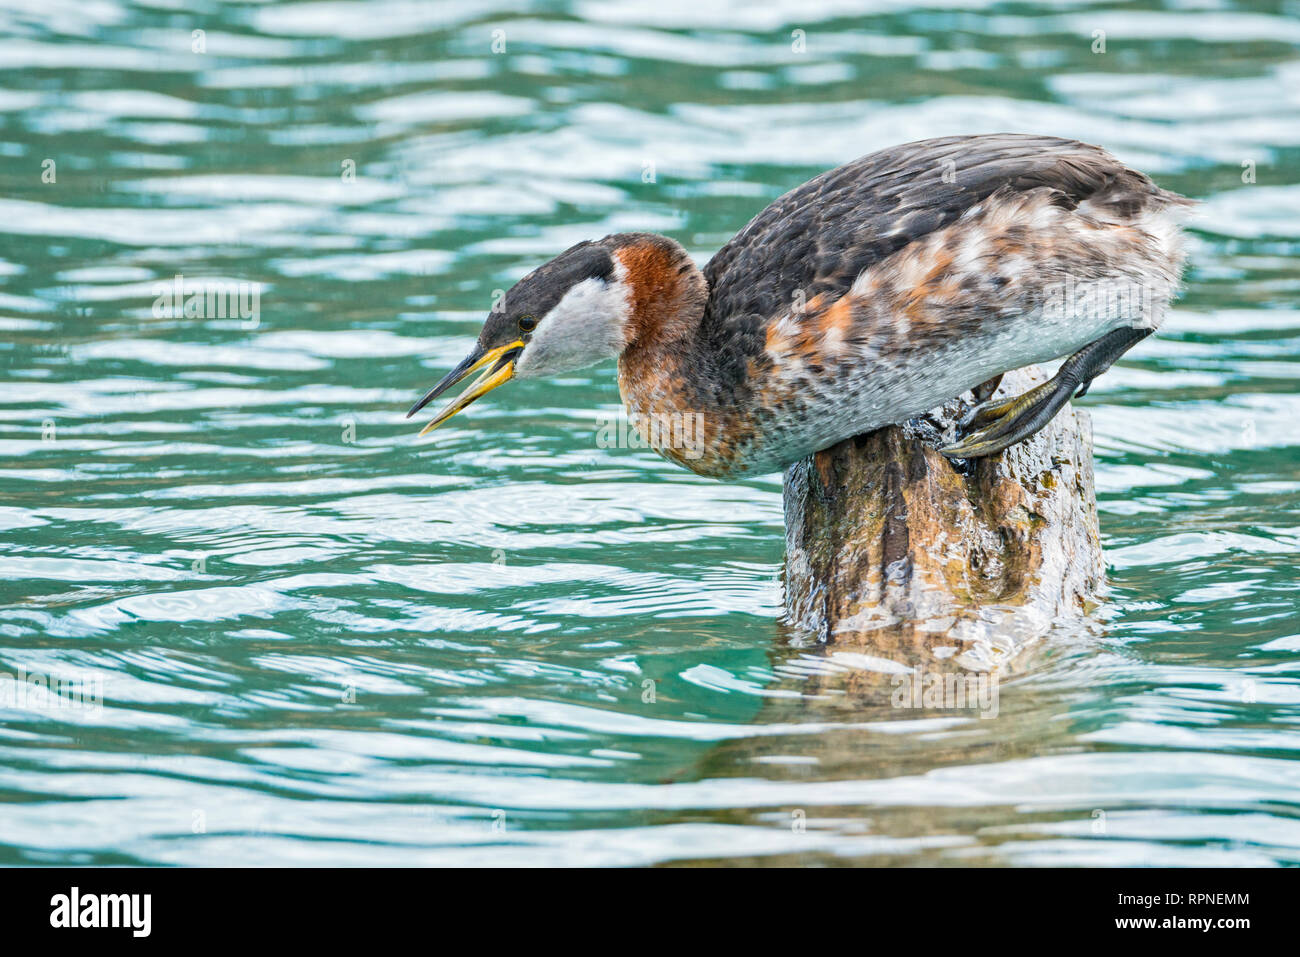 zoology / animals, avian / bird (aves), Red-necked Grebe (Podiceps grisegena) on log at Humber Bay Par, Additional-Rights-Clearance-Info-Not-Available - Stock Image